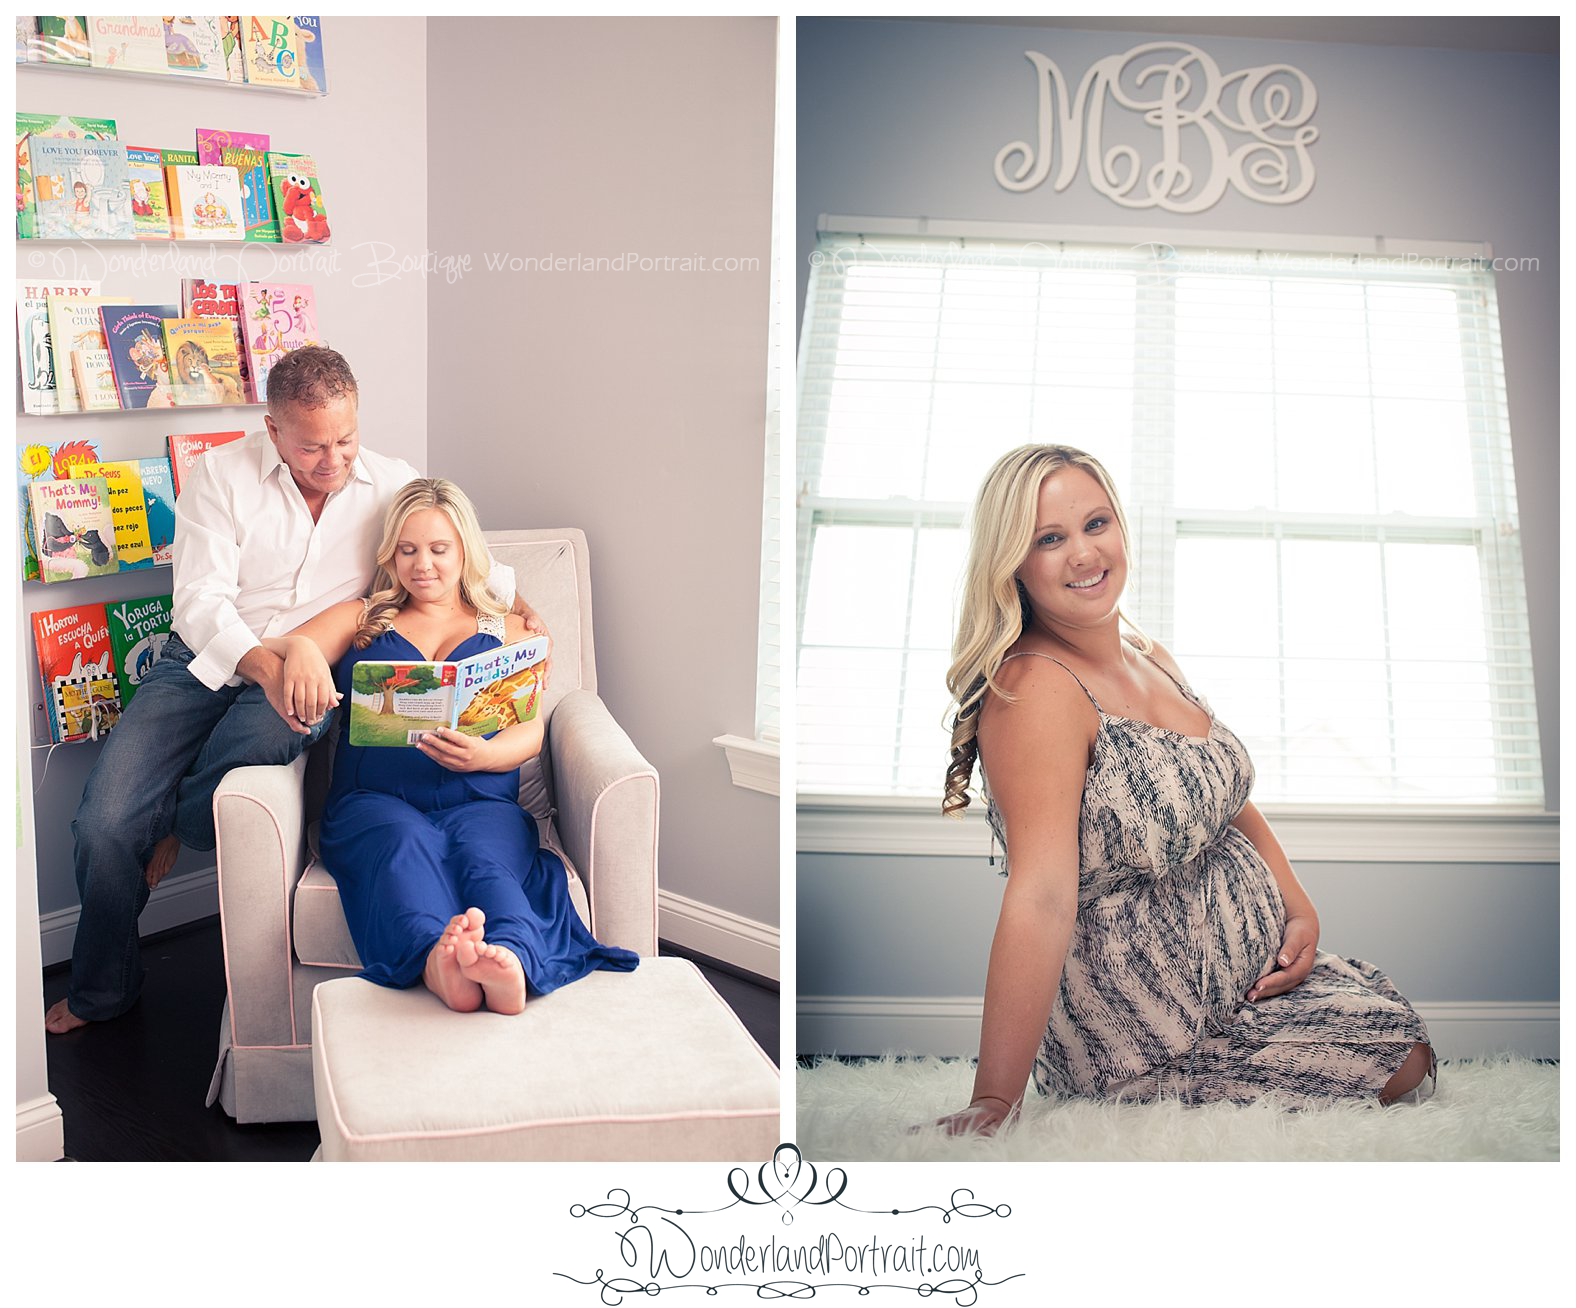 Bucks County PA Maternity Photographer | WonderlandPortrait.com